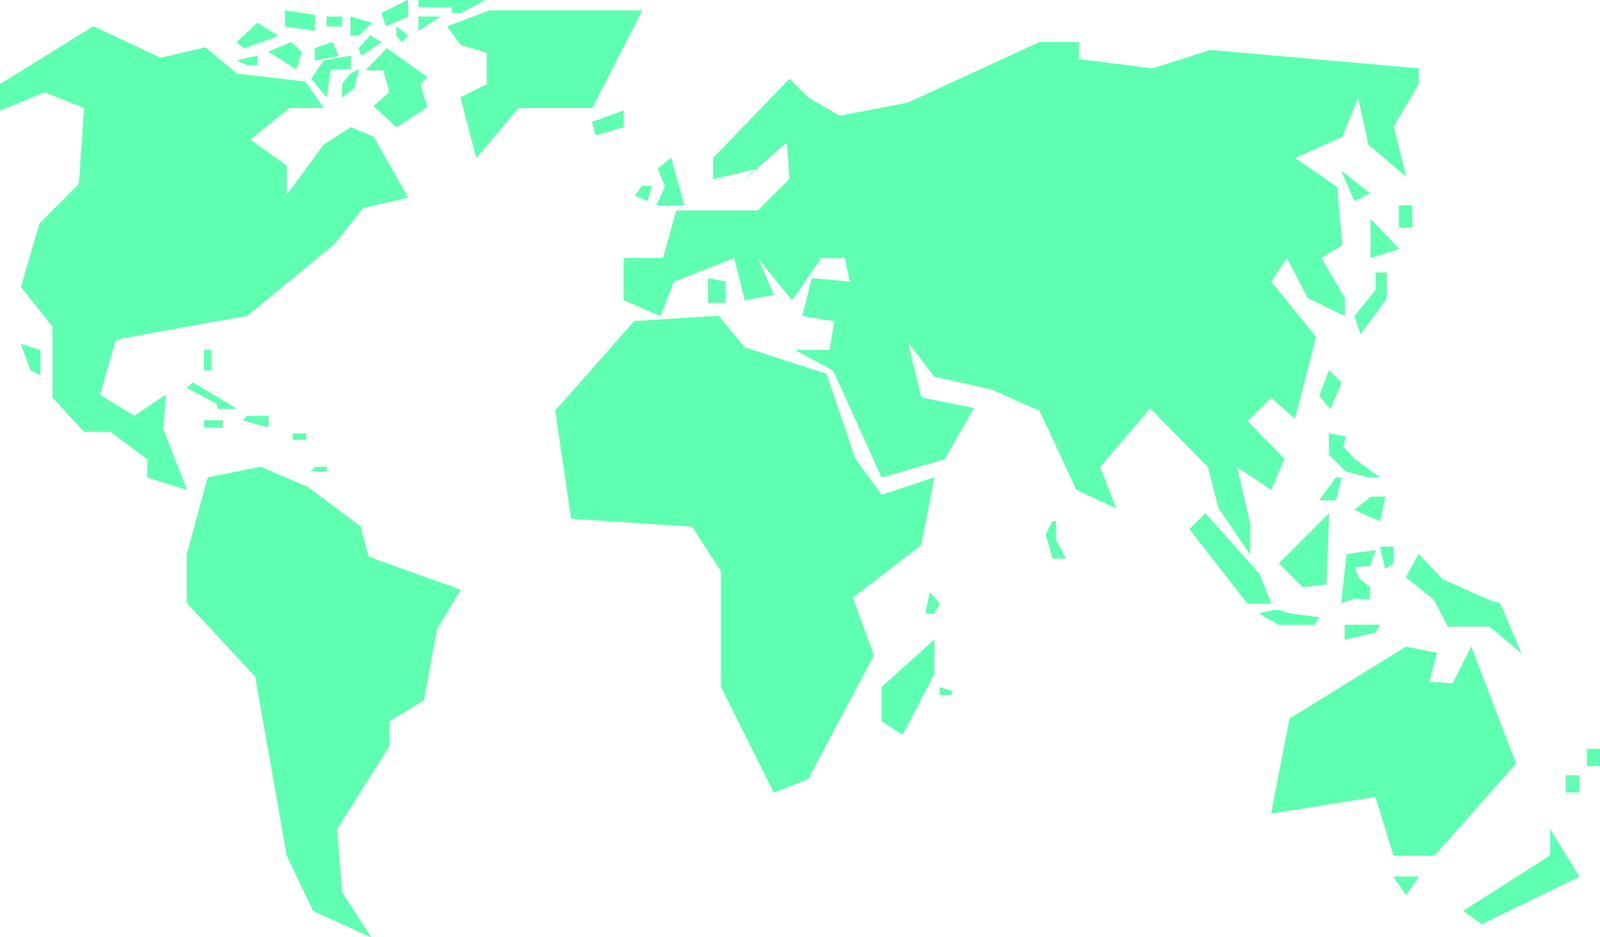 Simple World Map Clipart-Simple world map clipart-9